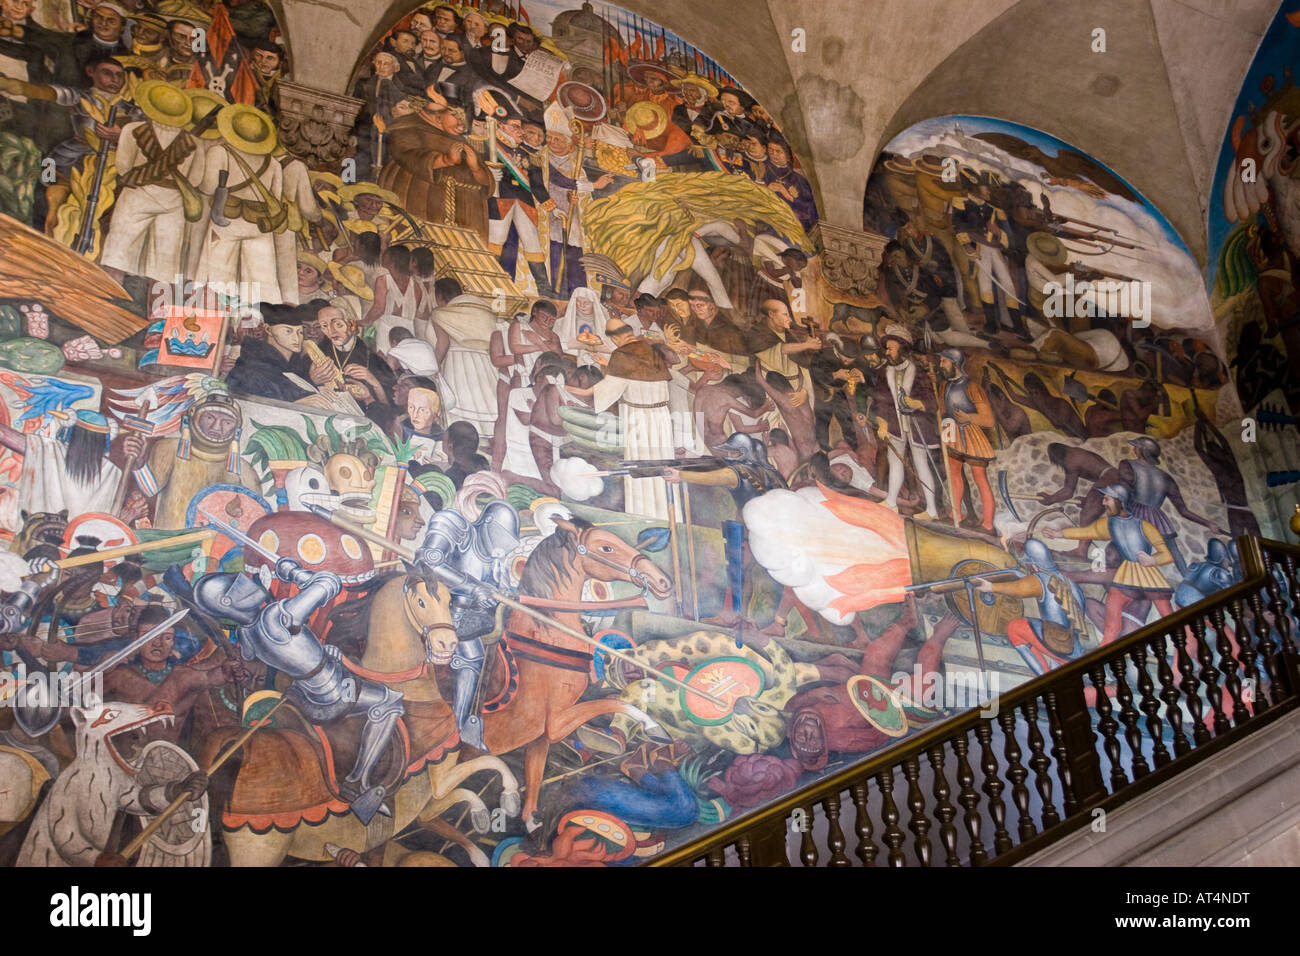 the history of mexico 1929 1935 diego rivera fresco